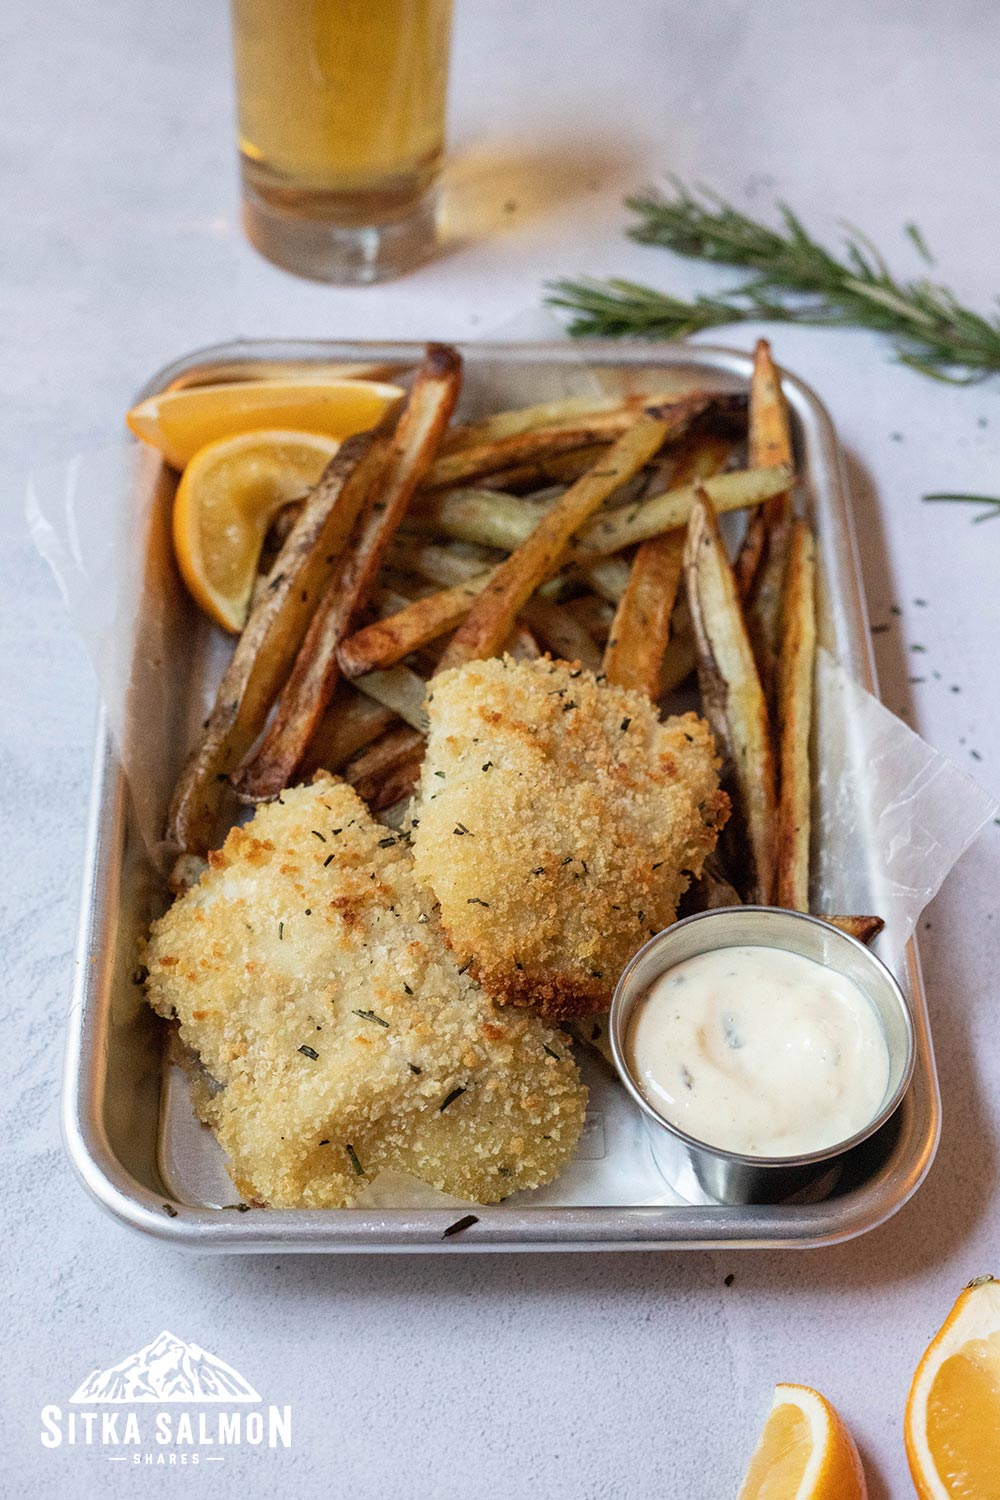 Baked Fish and Chips Recipe | Sitka Salmon Shares